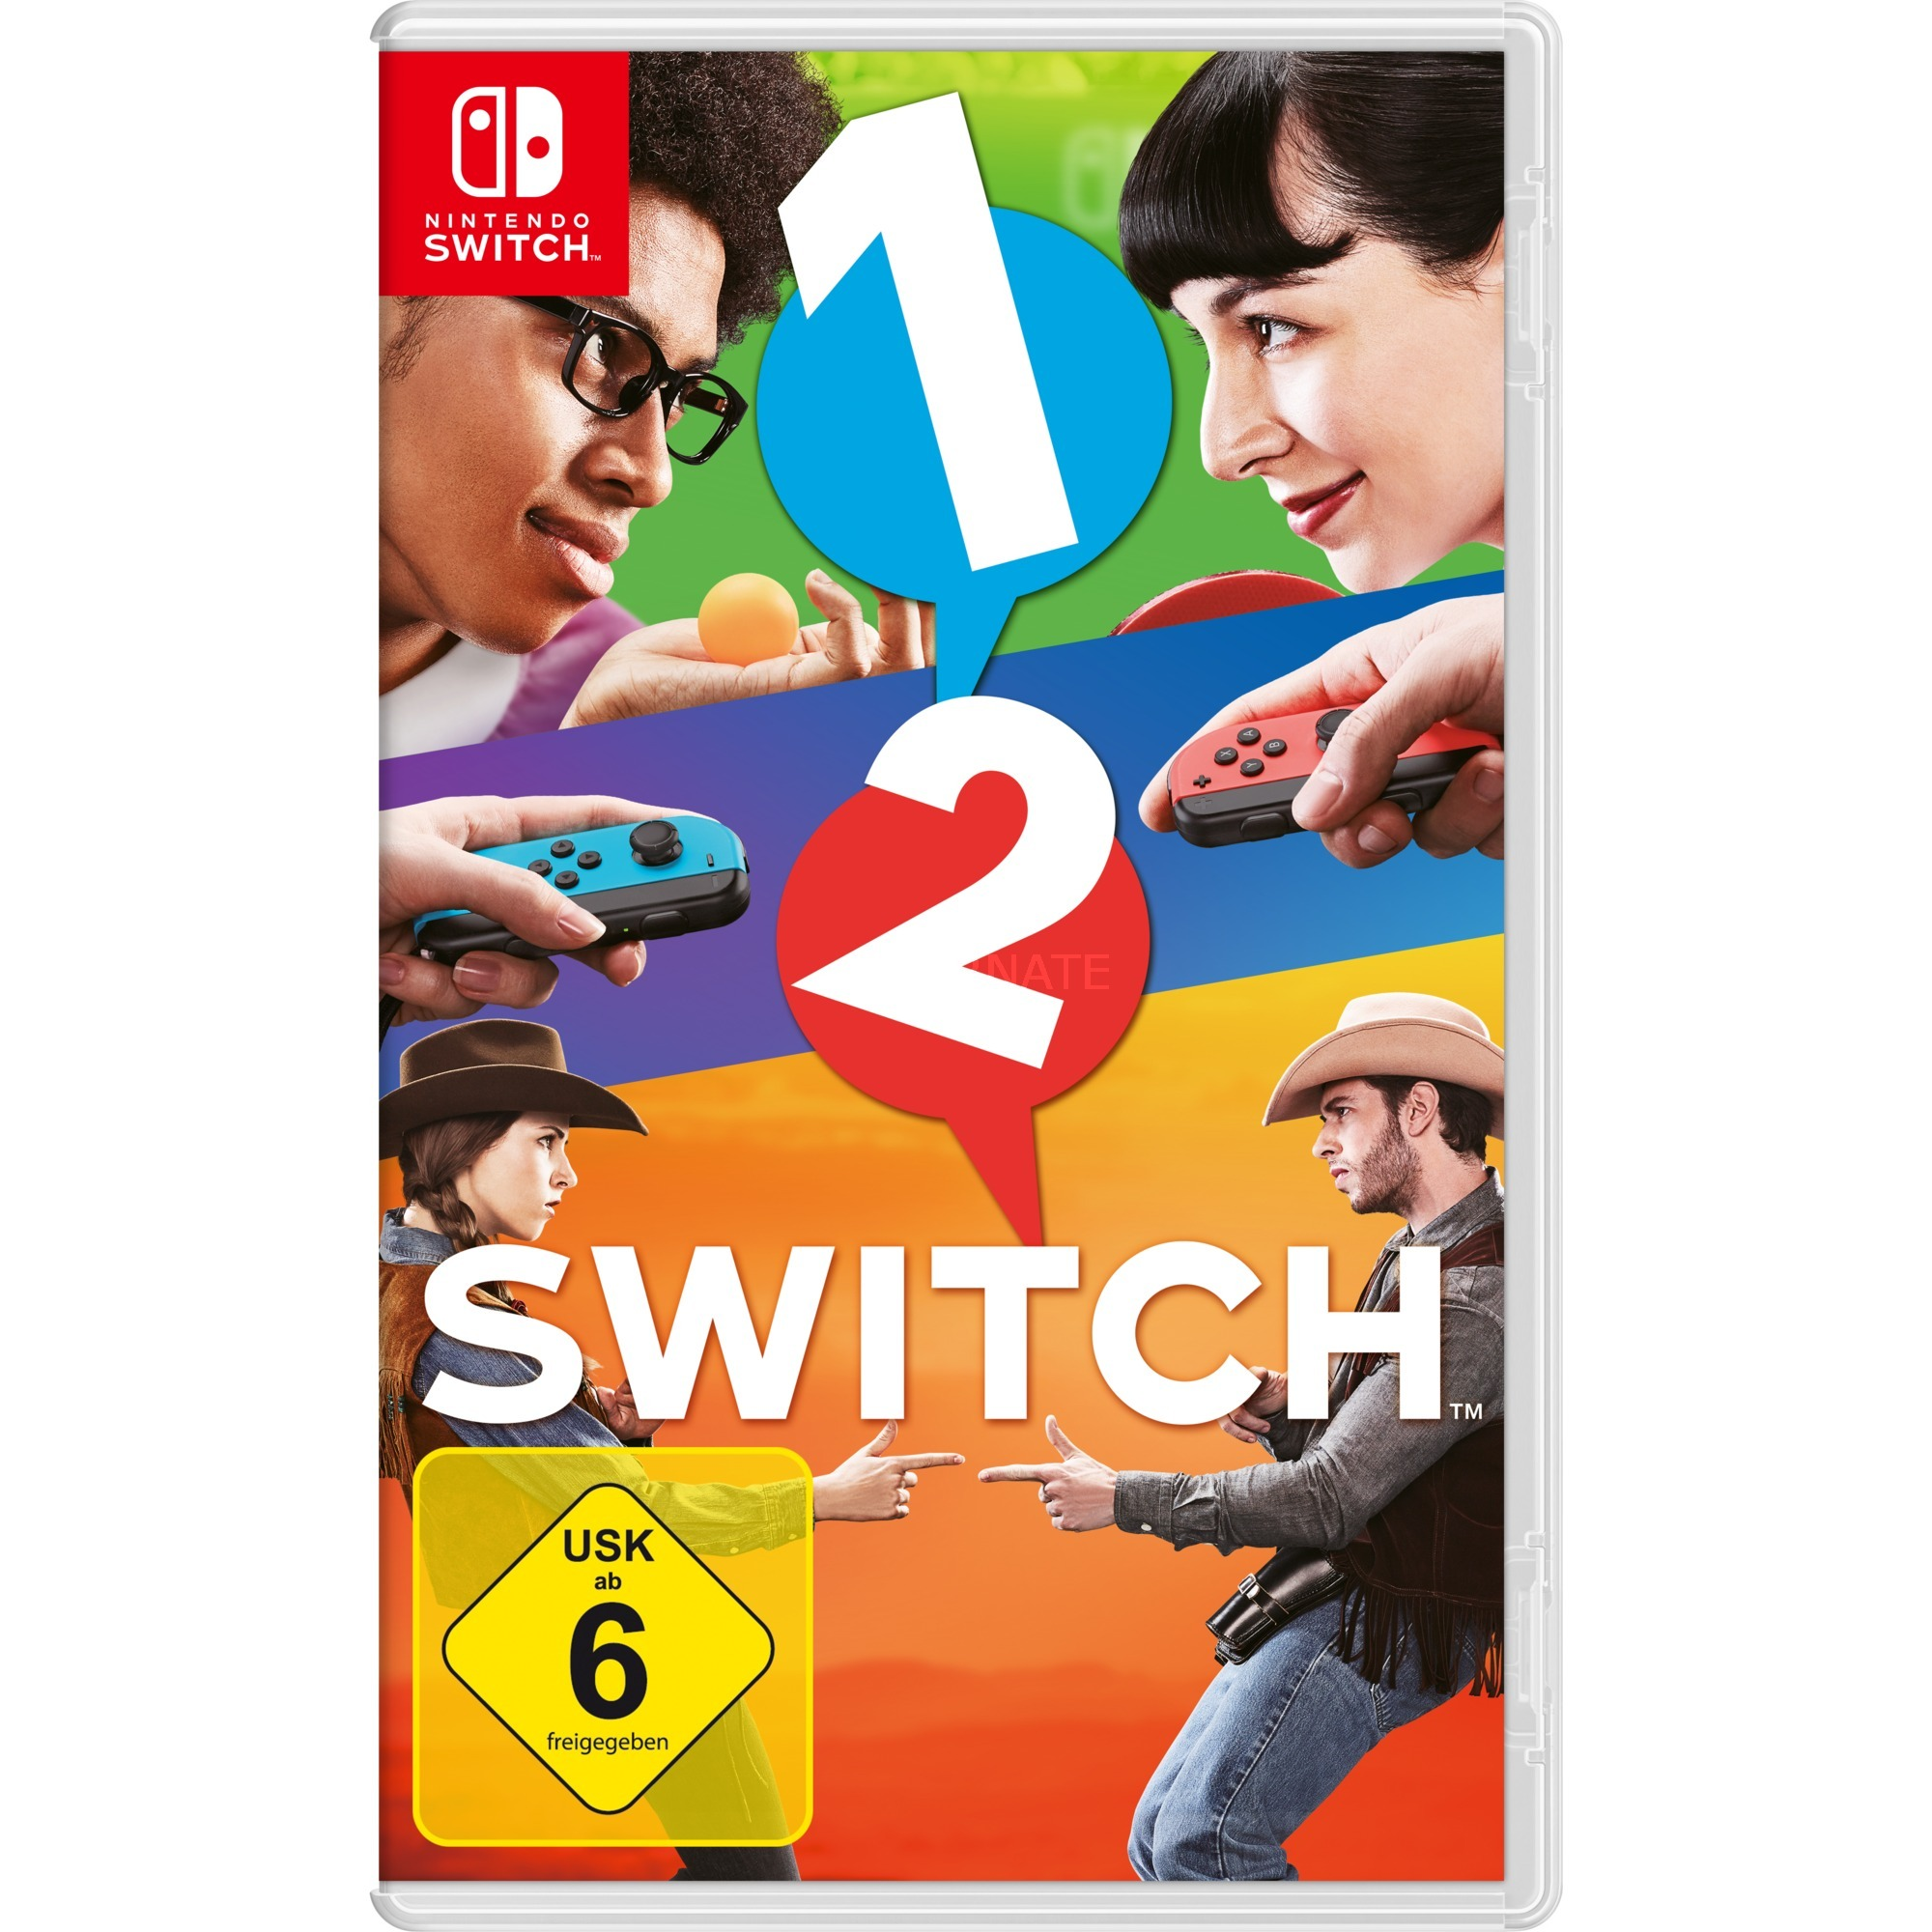 1-2-Switch, Switch vídeo juego Básico Nintendo Switch